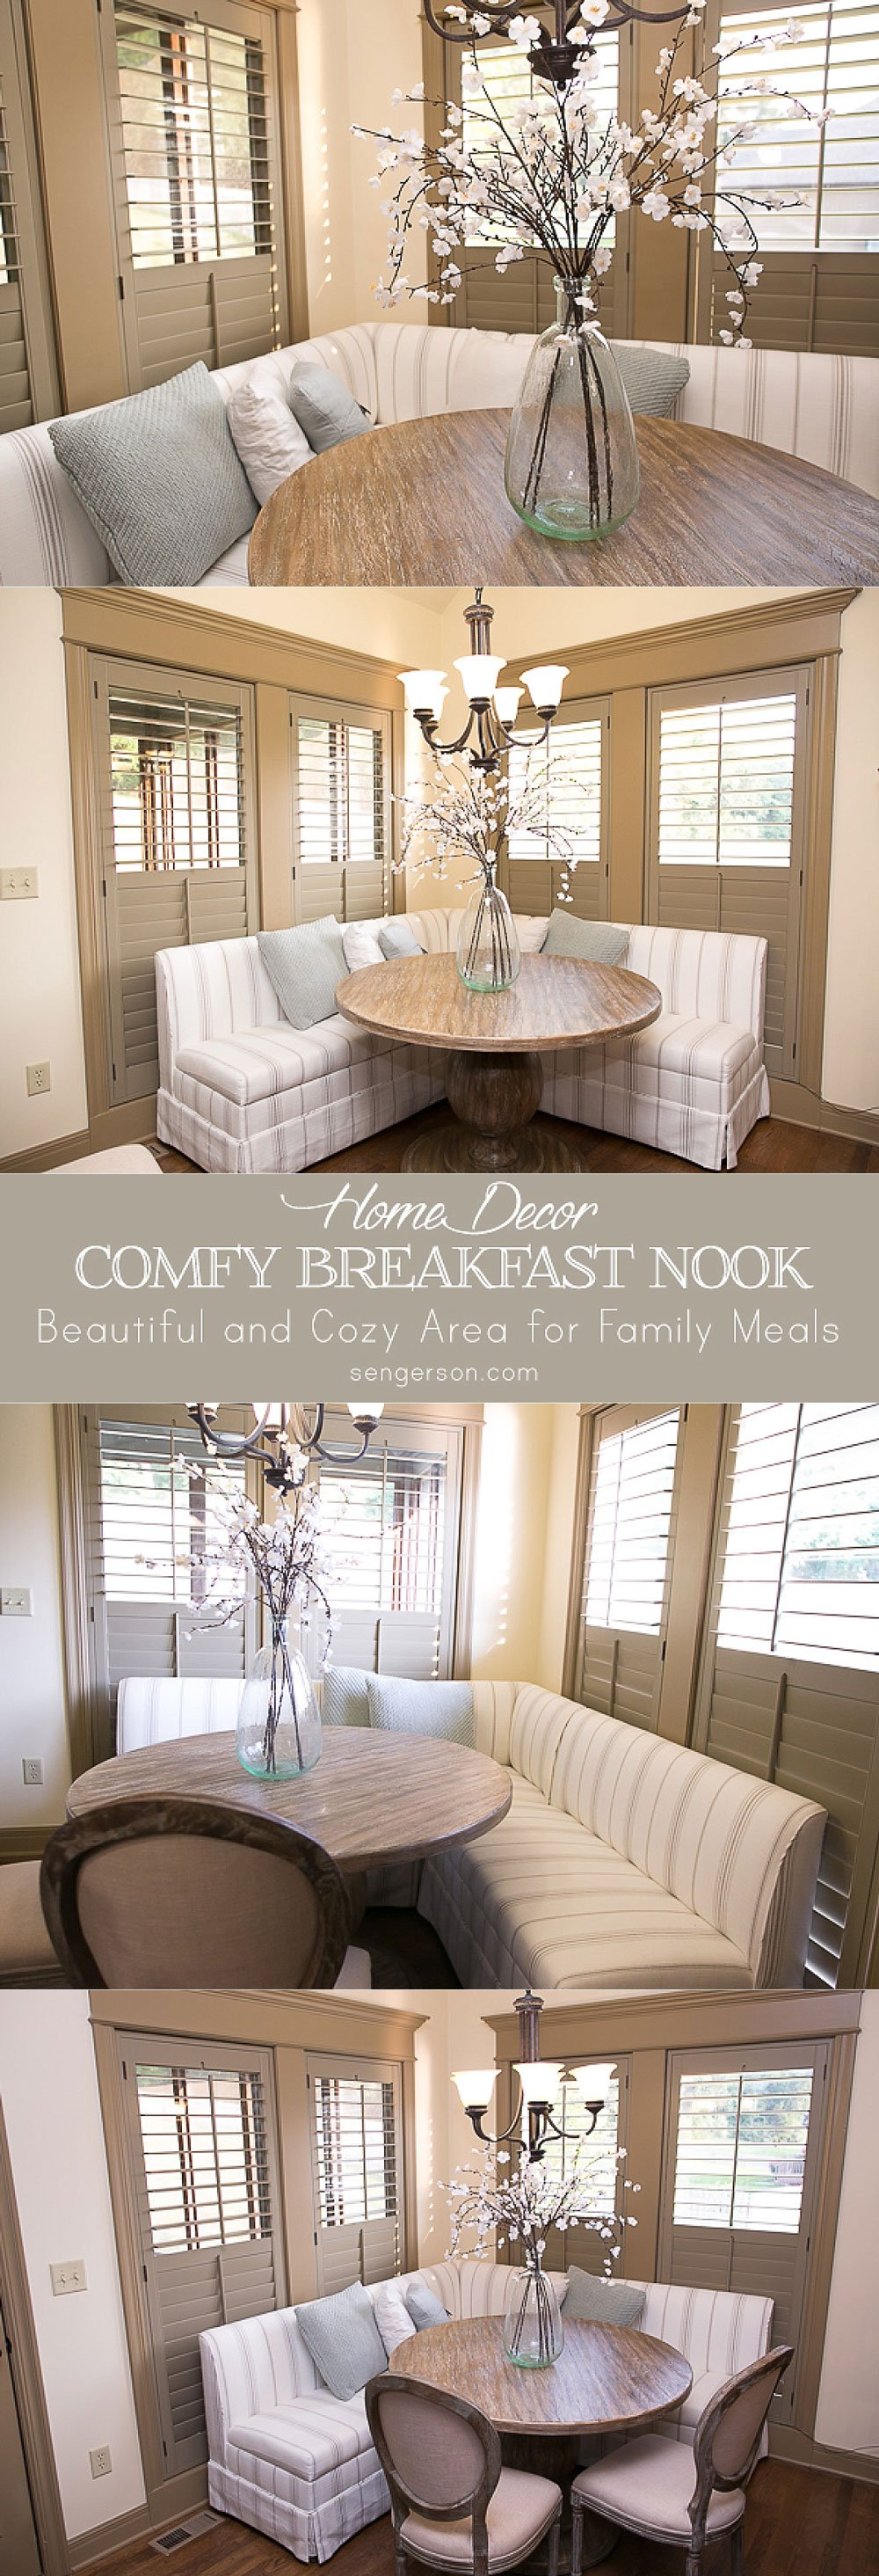 Beautiful and gorgeous breakfast and dining nook ideas to make family meals fun and cozy. From lifestyle blogger at sengerson.com.